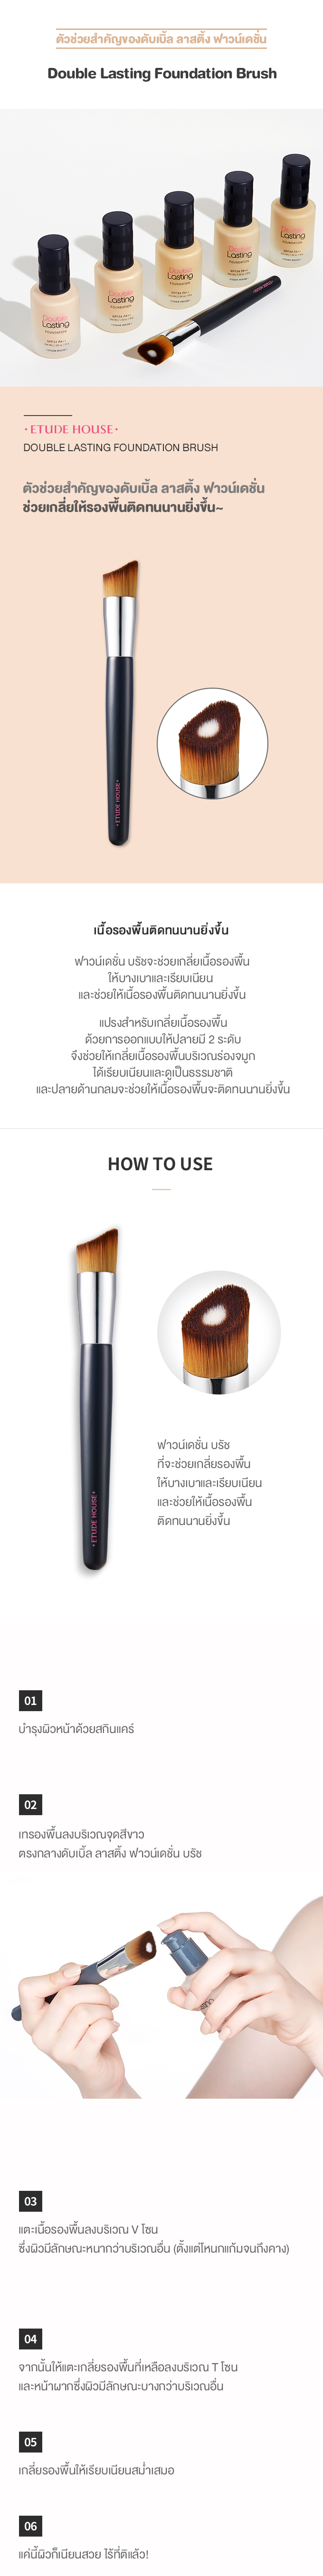 TH1_02_DOUBLE-LASTING-FOUNDATION_BRUSH